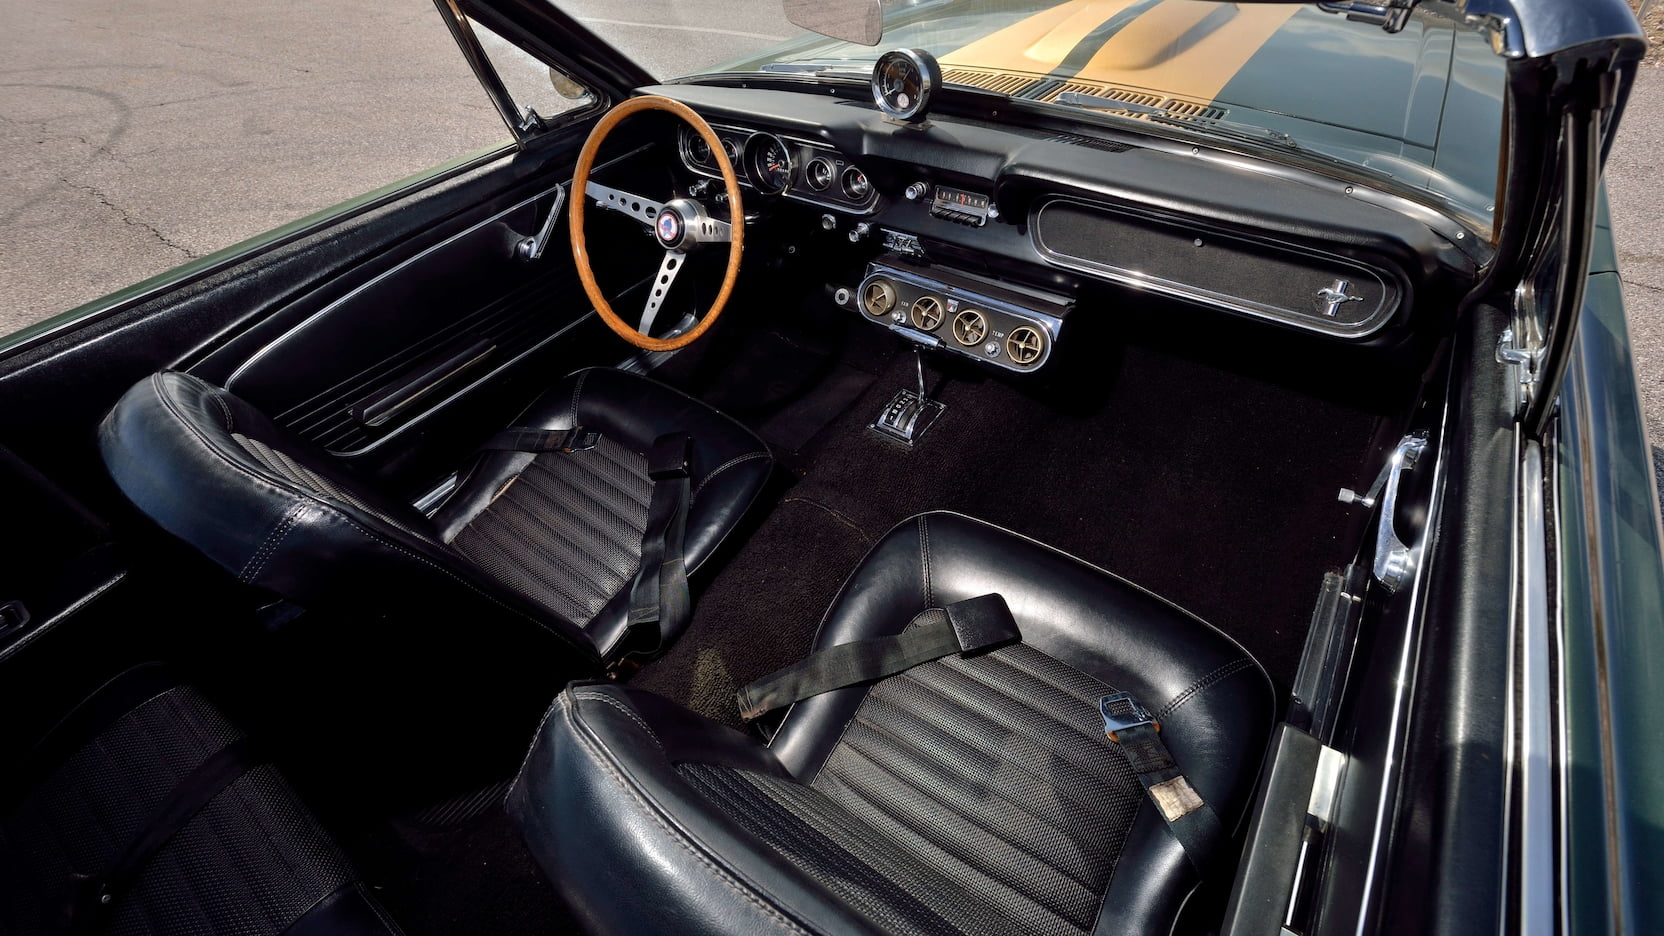 1966 Shelby GT350 Convertible Interior Front Angle